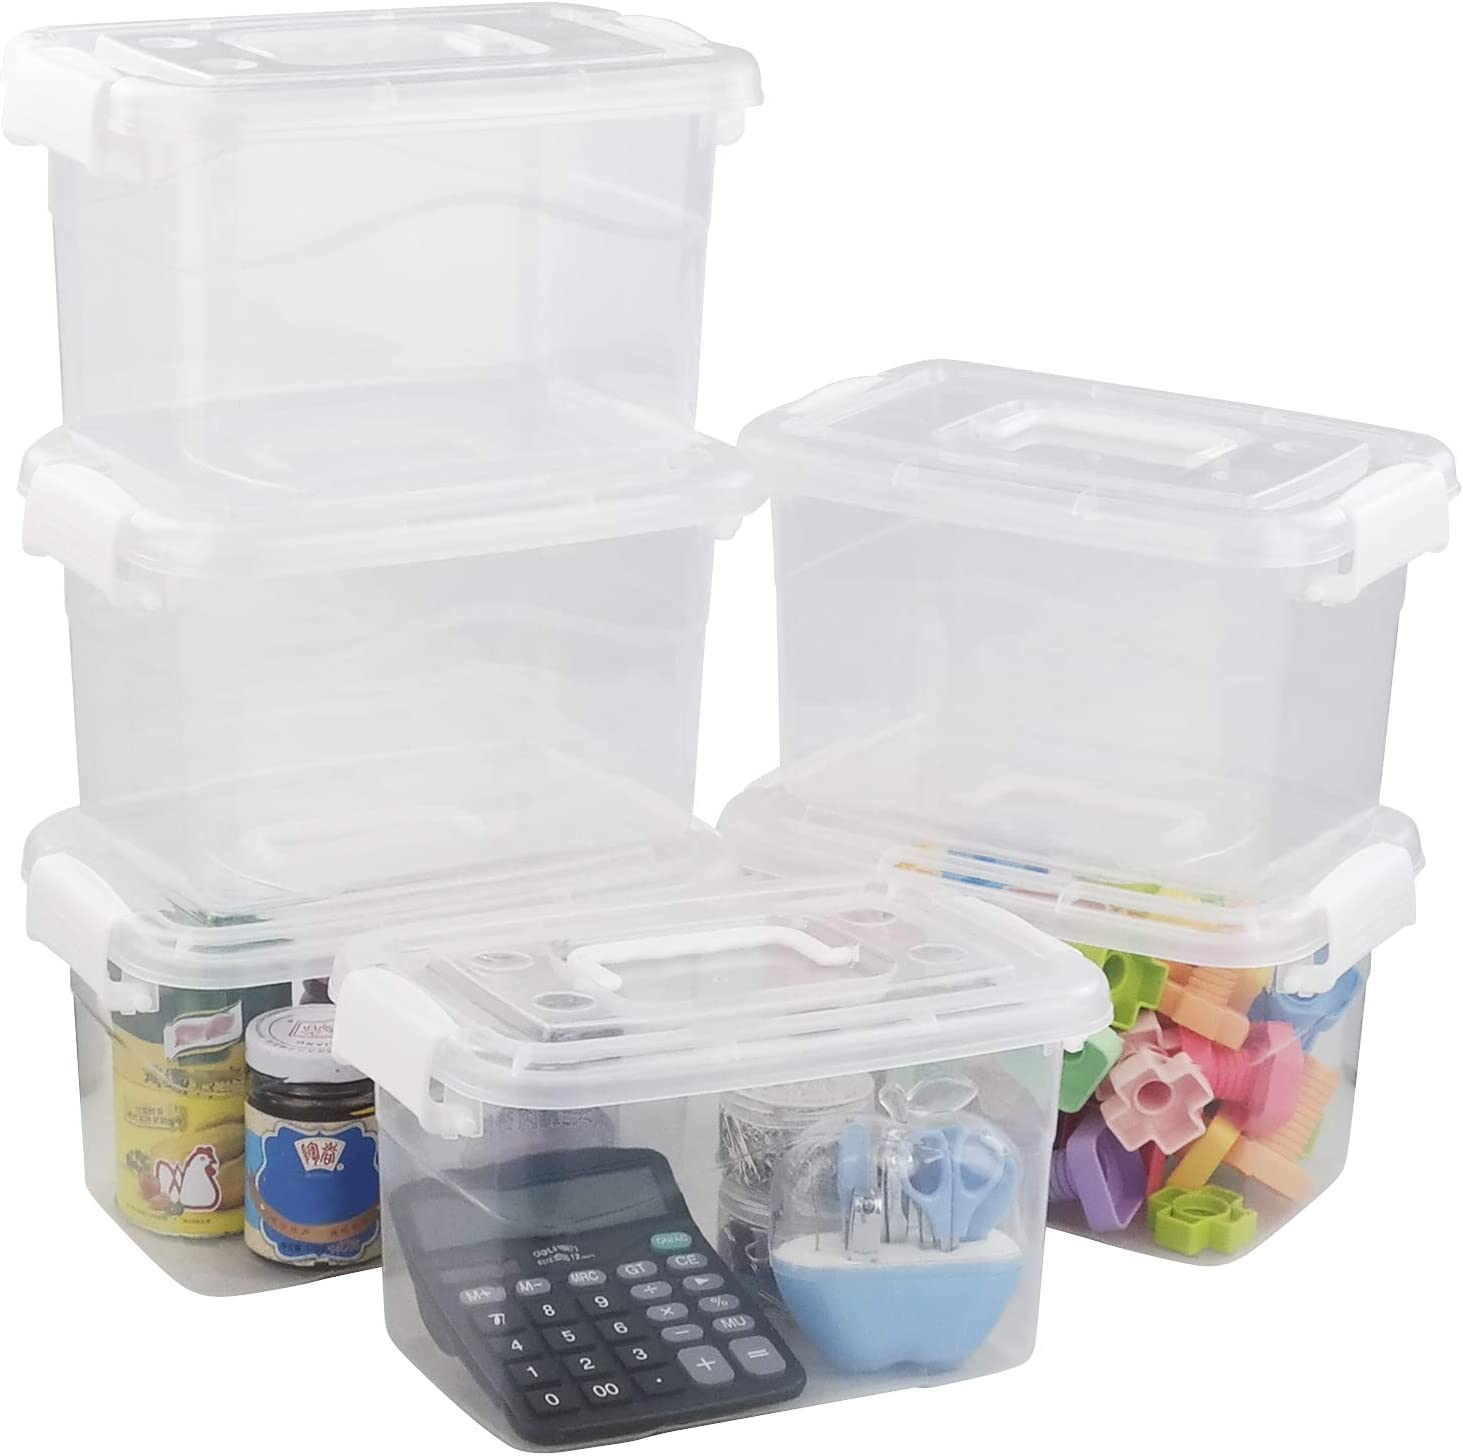 Ponpong Plastic Storage Bins with Lids and Handles Small Latch Boxes, Clear and White, 6 Packs